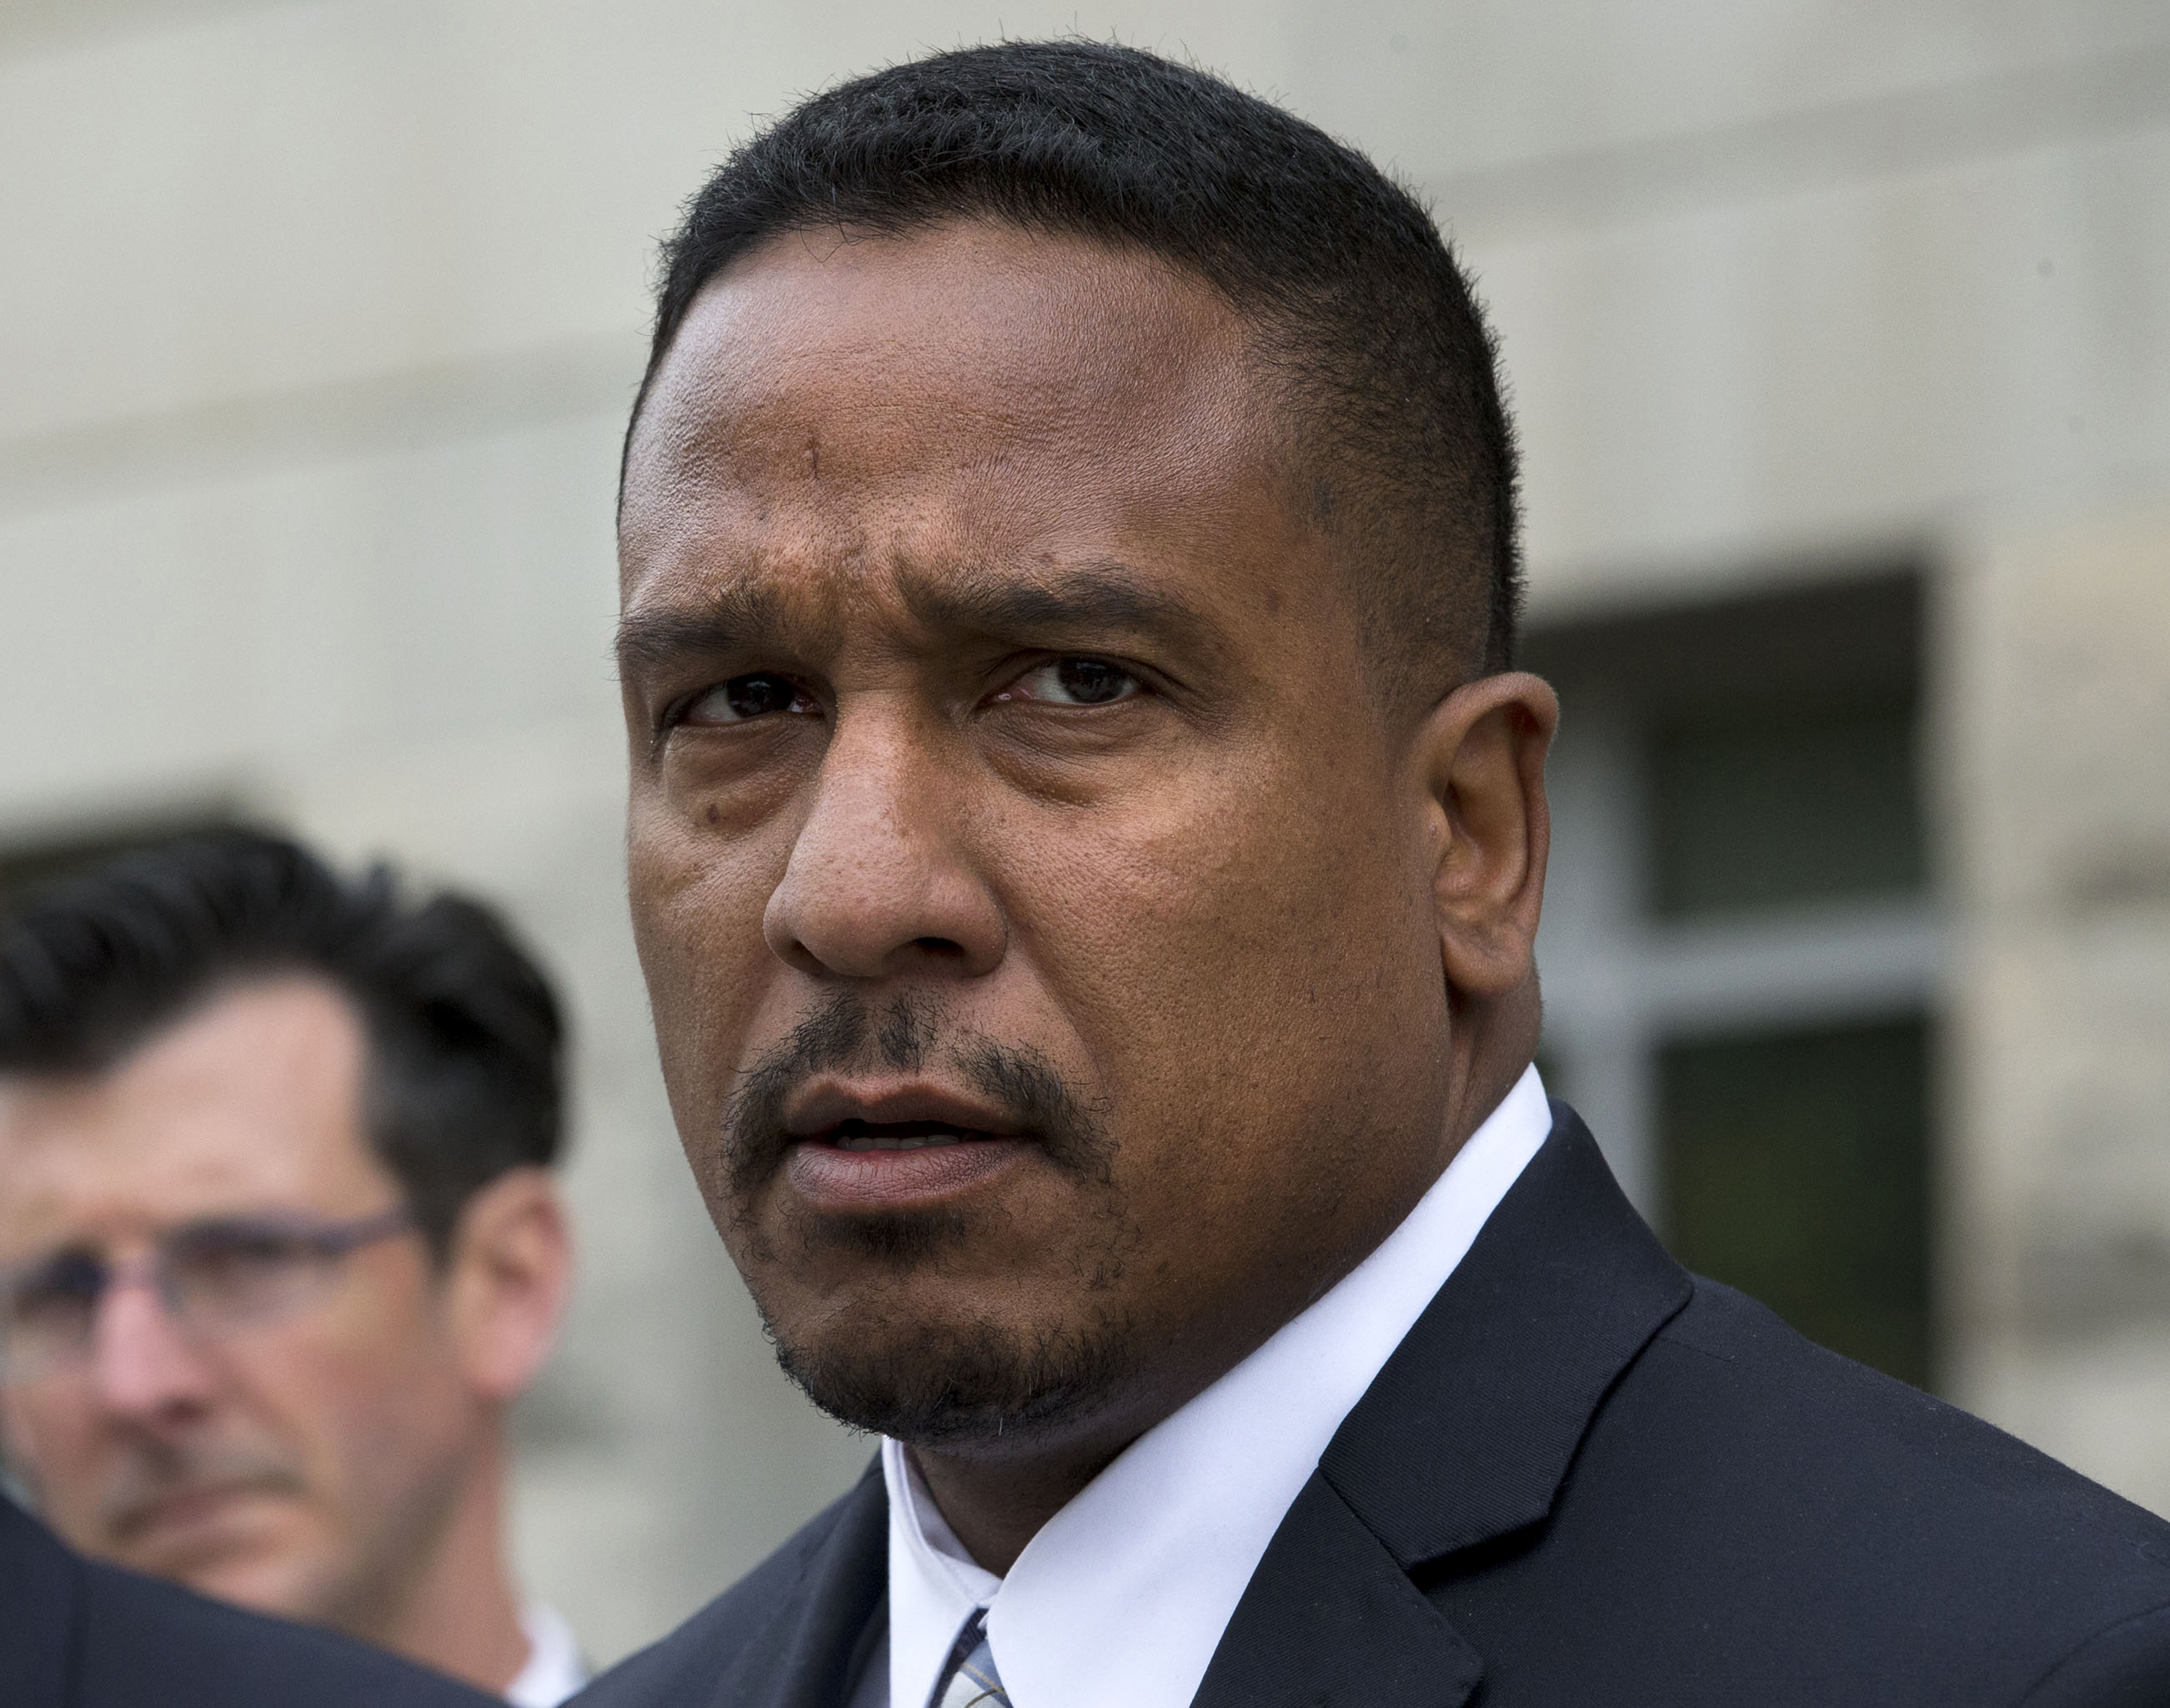 U.S. Attorney for D.C. announces he will step down